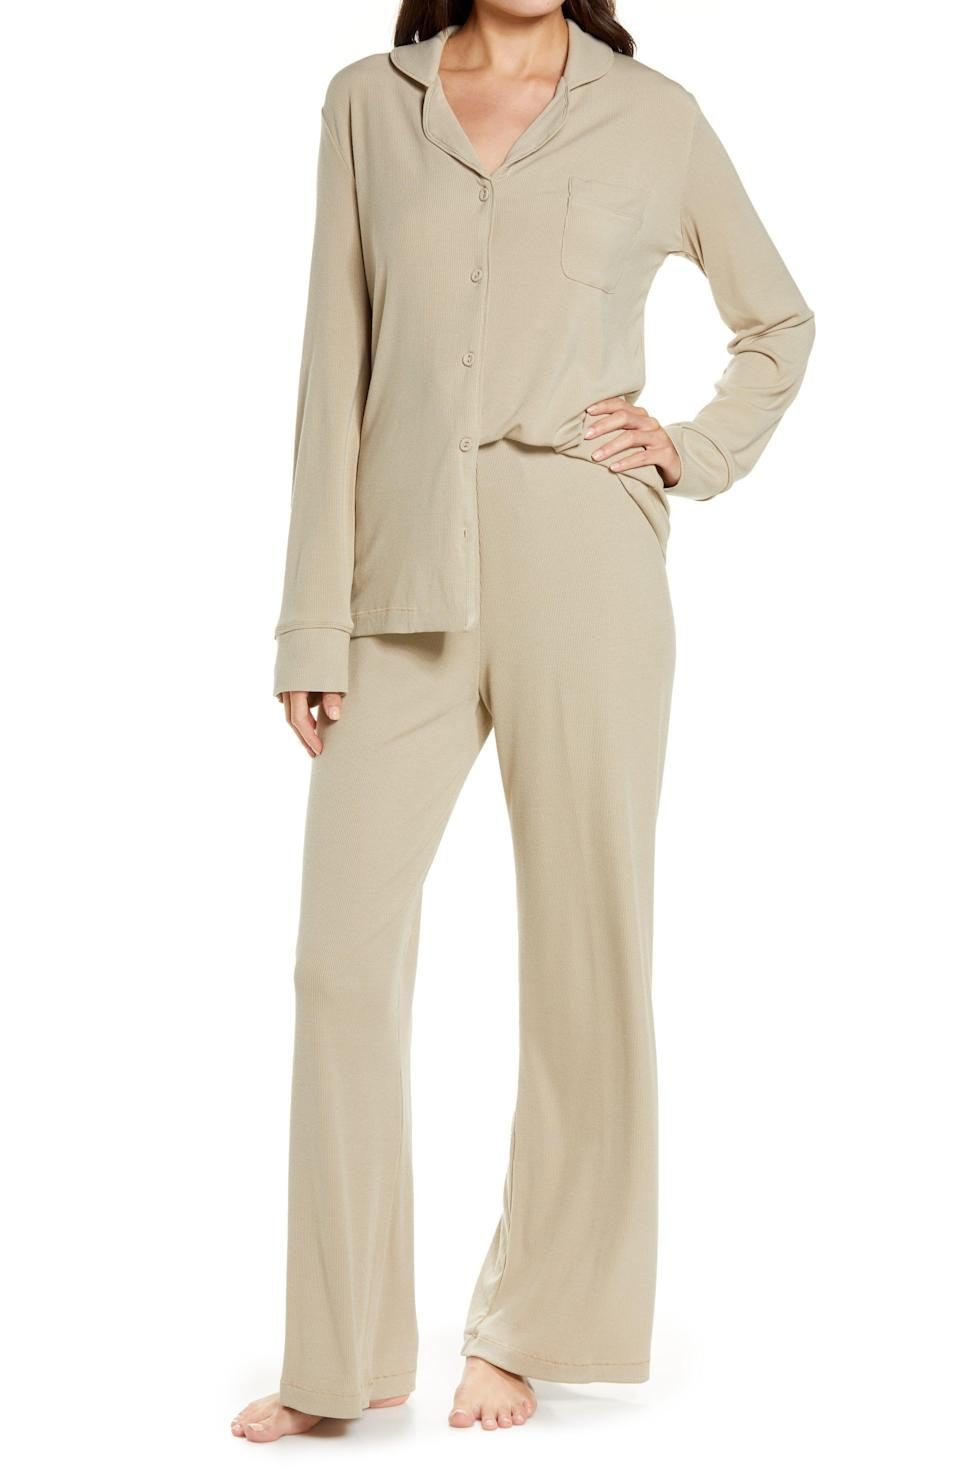 """<p><strong>SKIMS</strong></p><p>nordstrom.com</p><p><strong>$118.00</strong></p><p><a href=""""https://go.redirectingat.com?id=74968X1596630&url=https%3A%2F%2Fwww.nordstrom.com%2Fs%2Fskims-rib-pajamas-regular-plus-size%2F5897392&sref=https%3A%2F%2Fwww.womenshealthmag.com%2Flife%2Fg37581188%2Fpajamas-for-women%2F"""" rel=""""nofollow noopener"""" target=""""_blank"""" data-ylk=""""slk:Shop Now"""" class=""""link rapid-noclick-resp"""">Shop Now</a></p><p>Kim Kardashian West's Skims brand makes <em>so</em> much more than shapewear. These comfy ribbed stretch modal jammies will have you sleeping stylishly in no time.<br></p>"""